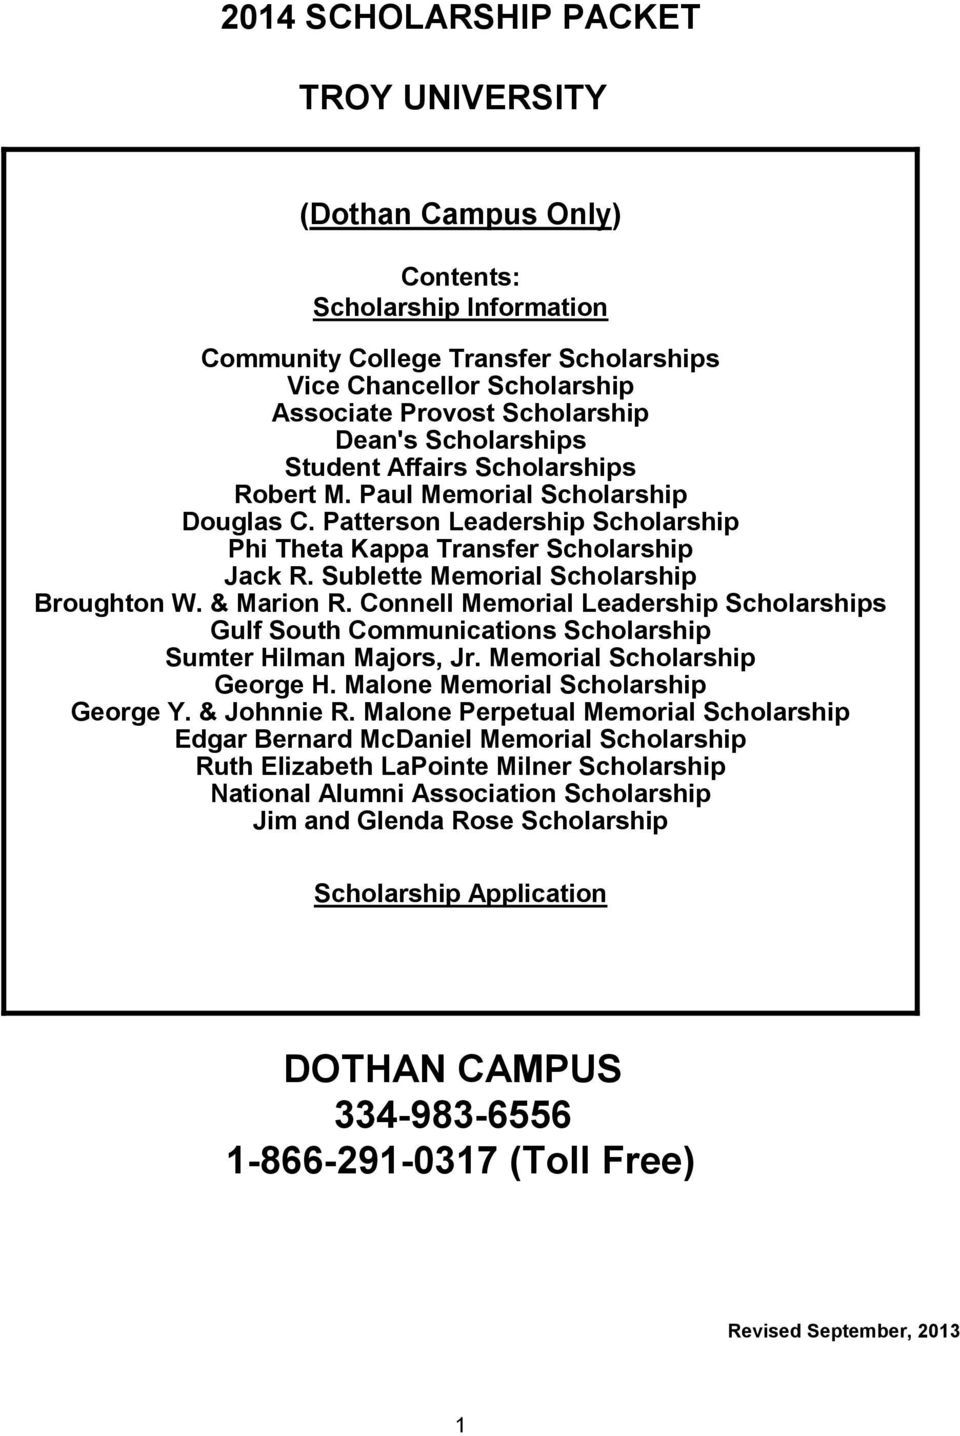 Sublette Memorial Scholarship Broughton W. & Marion R. Connell Memorial Leadership Scholarships Gulf South Communications Scholarship Sumter Hilman Majors, Jr. Memorial Scholarship George H.